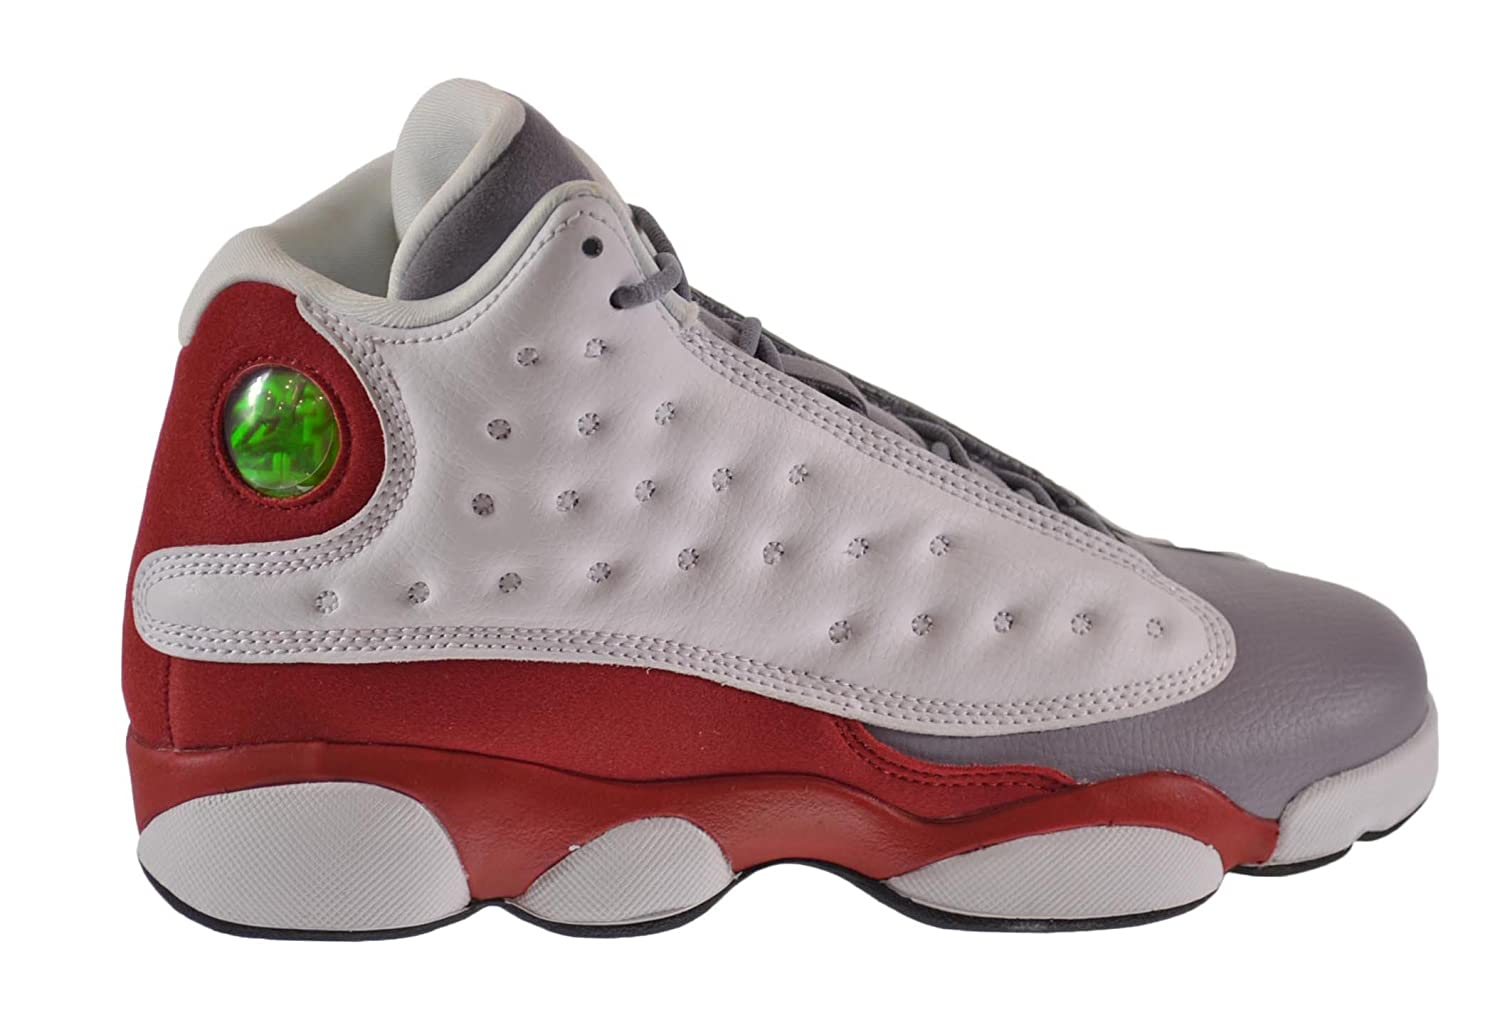 quality design 37938 95bac Amazon.com  Jordan Air 13 Retro Grey Toe BG Big Kids Shoes White Black-True  Red-Cement Grey 414574-126  Shoes